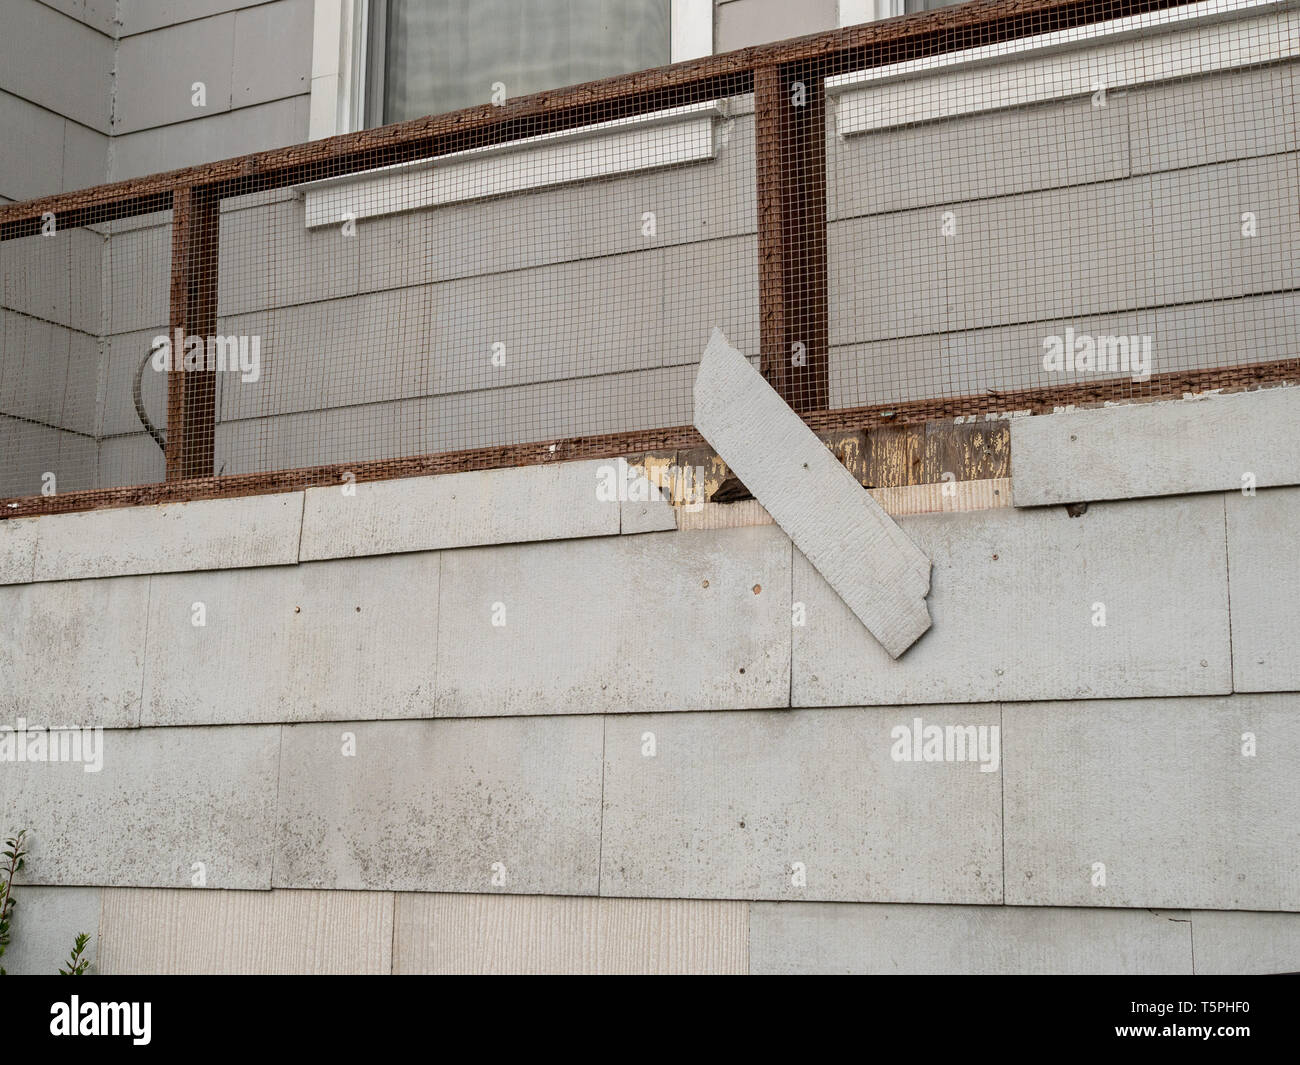 Shingle on exterior wall of house falling off in state of disrepair - Stock Image